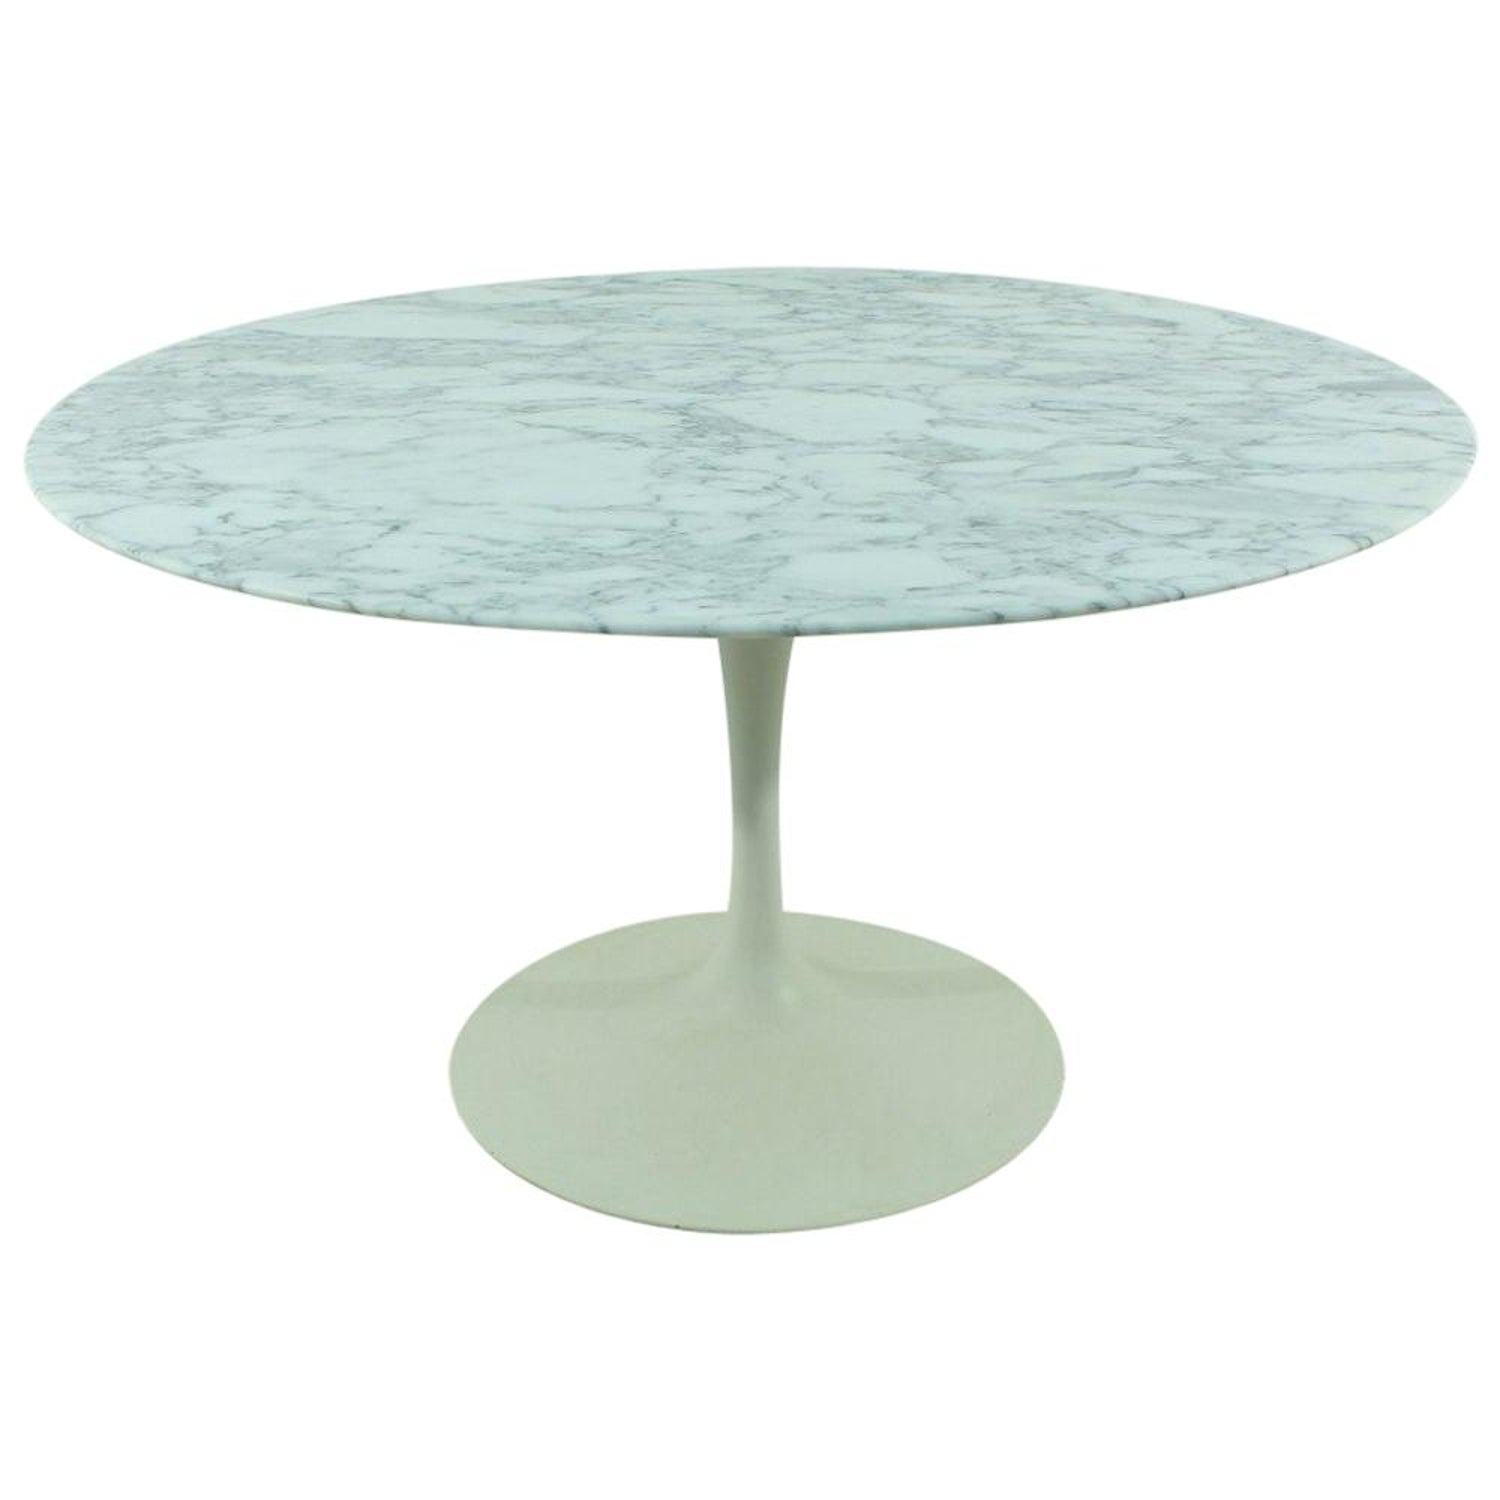 Early Saarinen for Knoll Tulip Table, USA, 1960s For Sale at 1stdibs